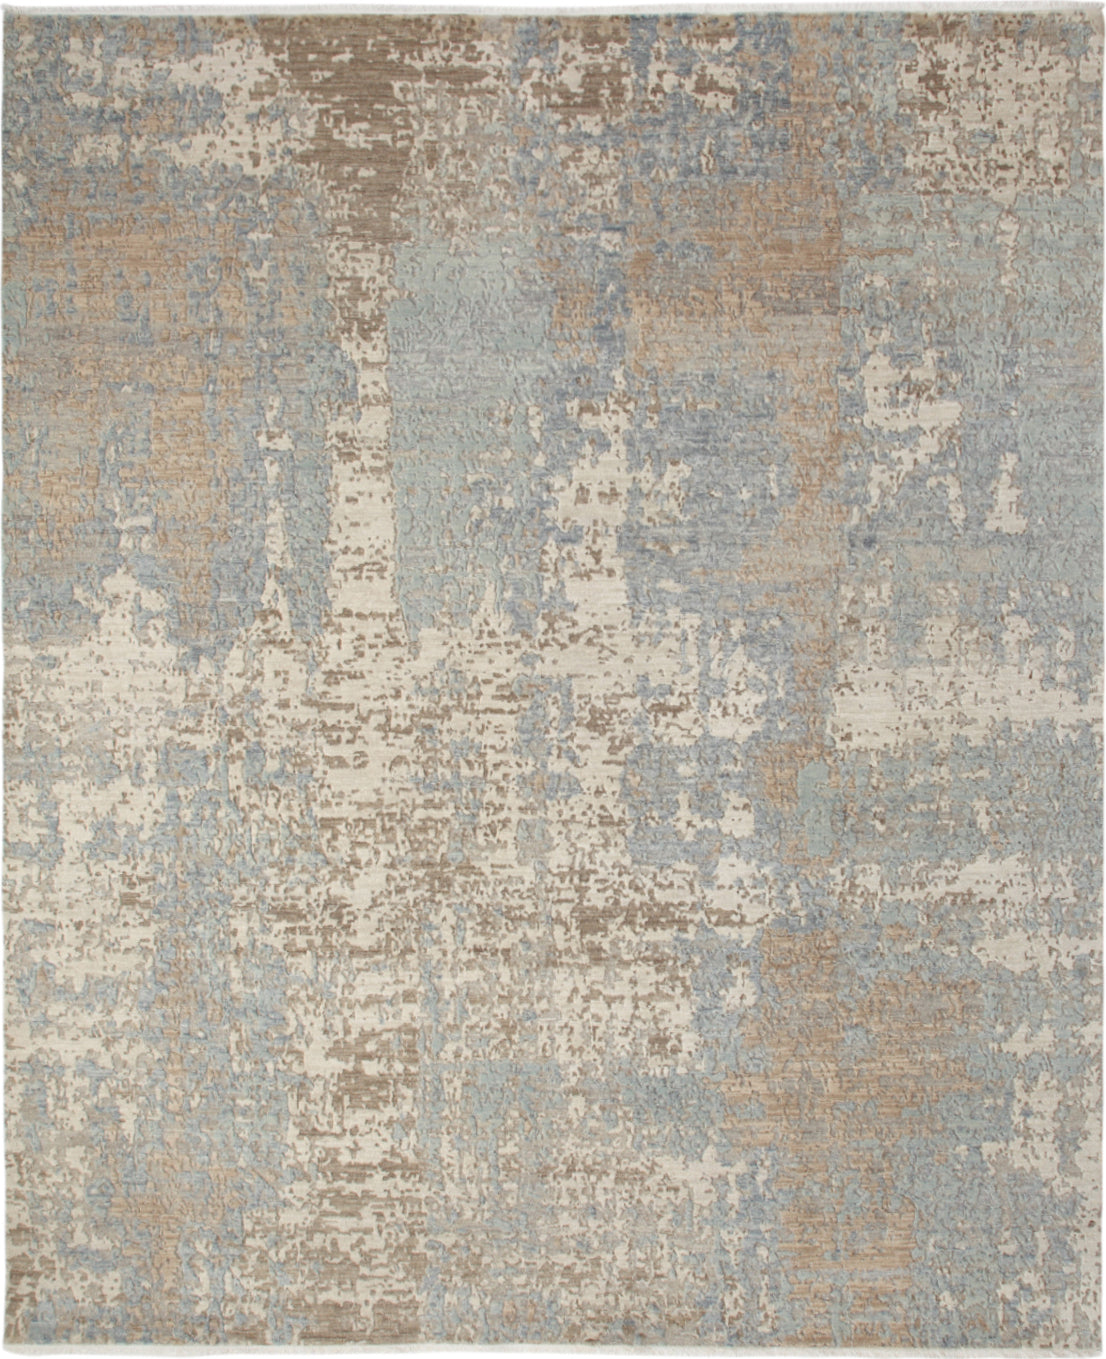 Solo Rugs Galaxy M8051-56 Beige Area Rug main image